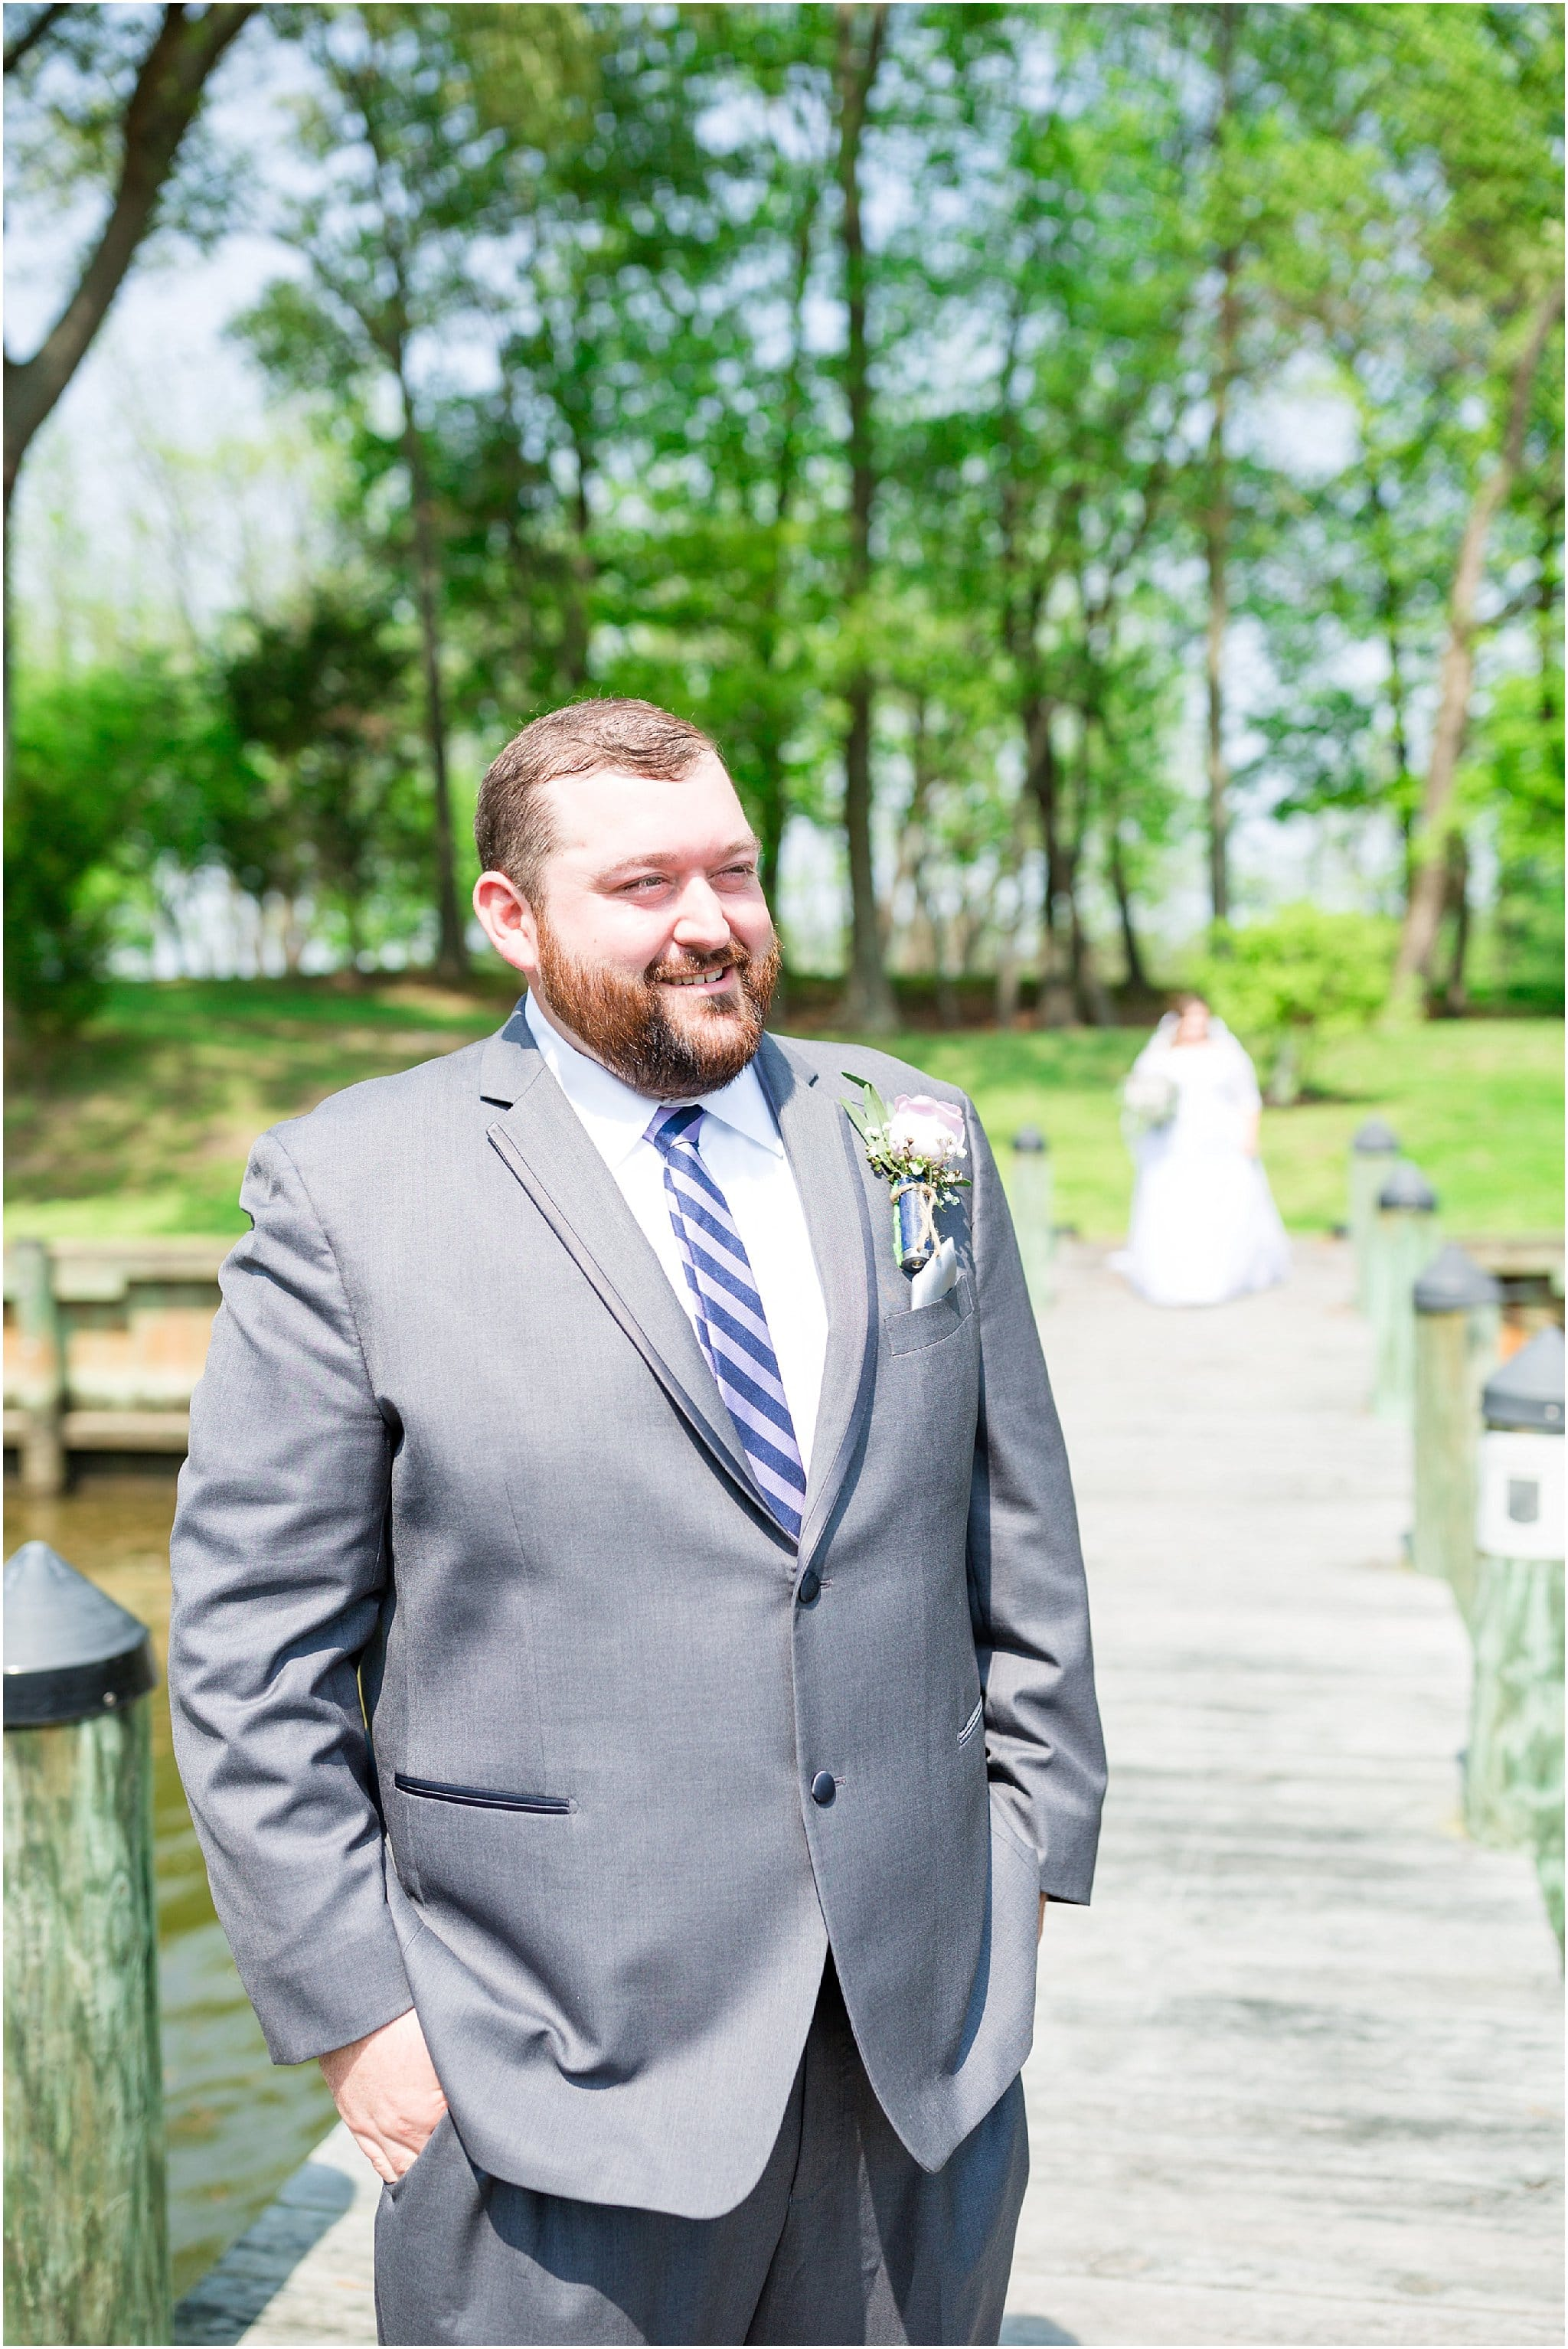 cole-wye-island-wedding-cassidymrphotography_0049